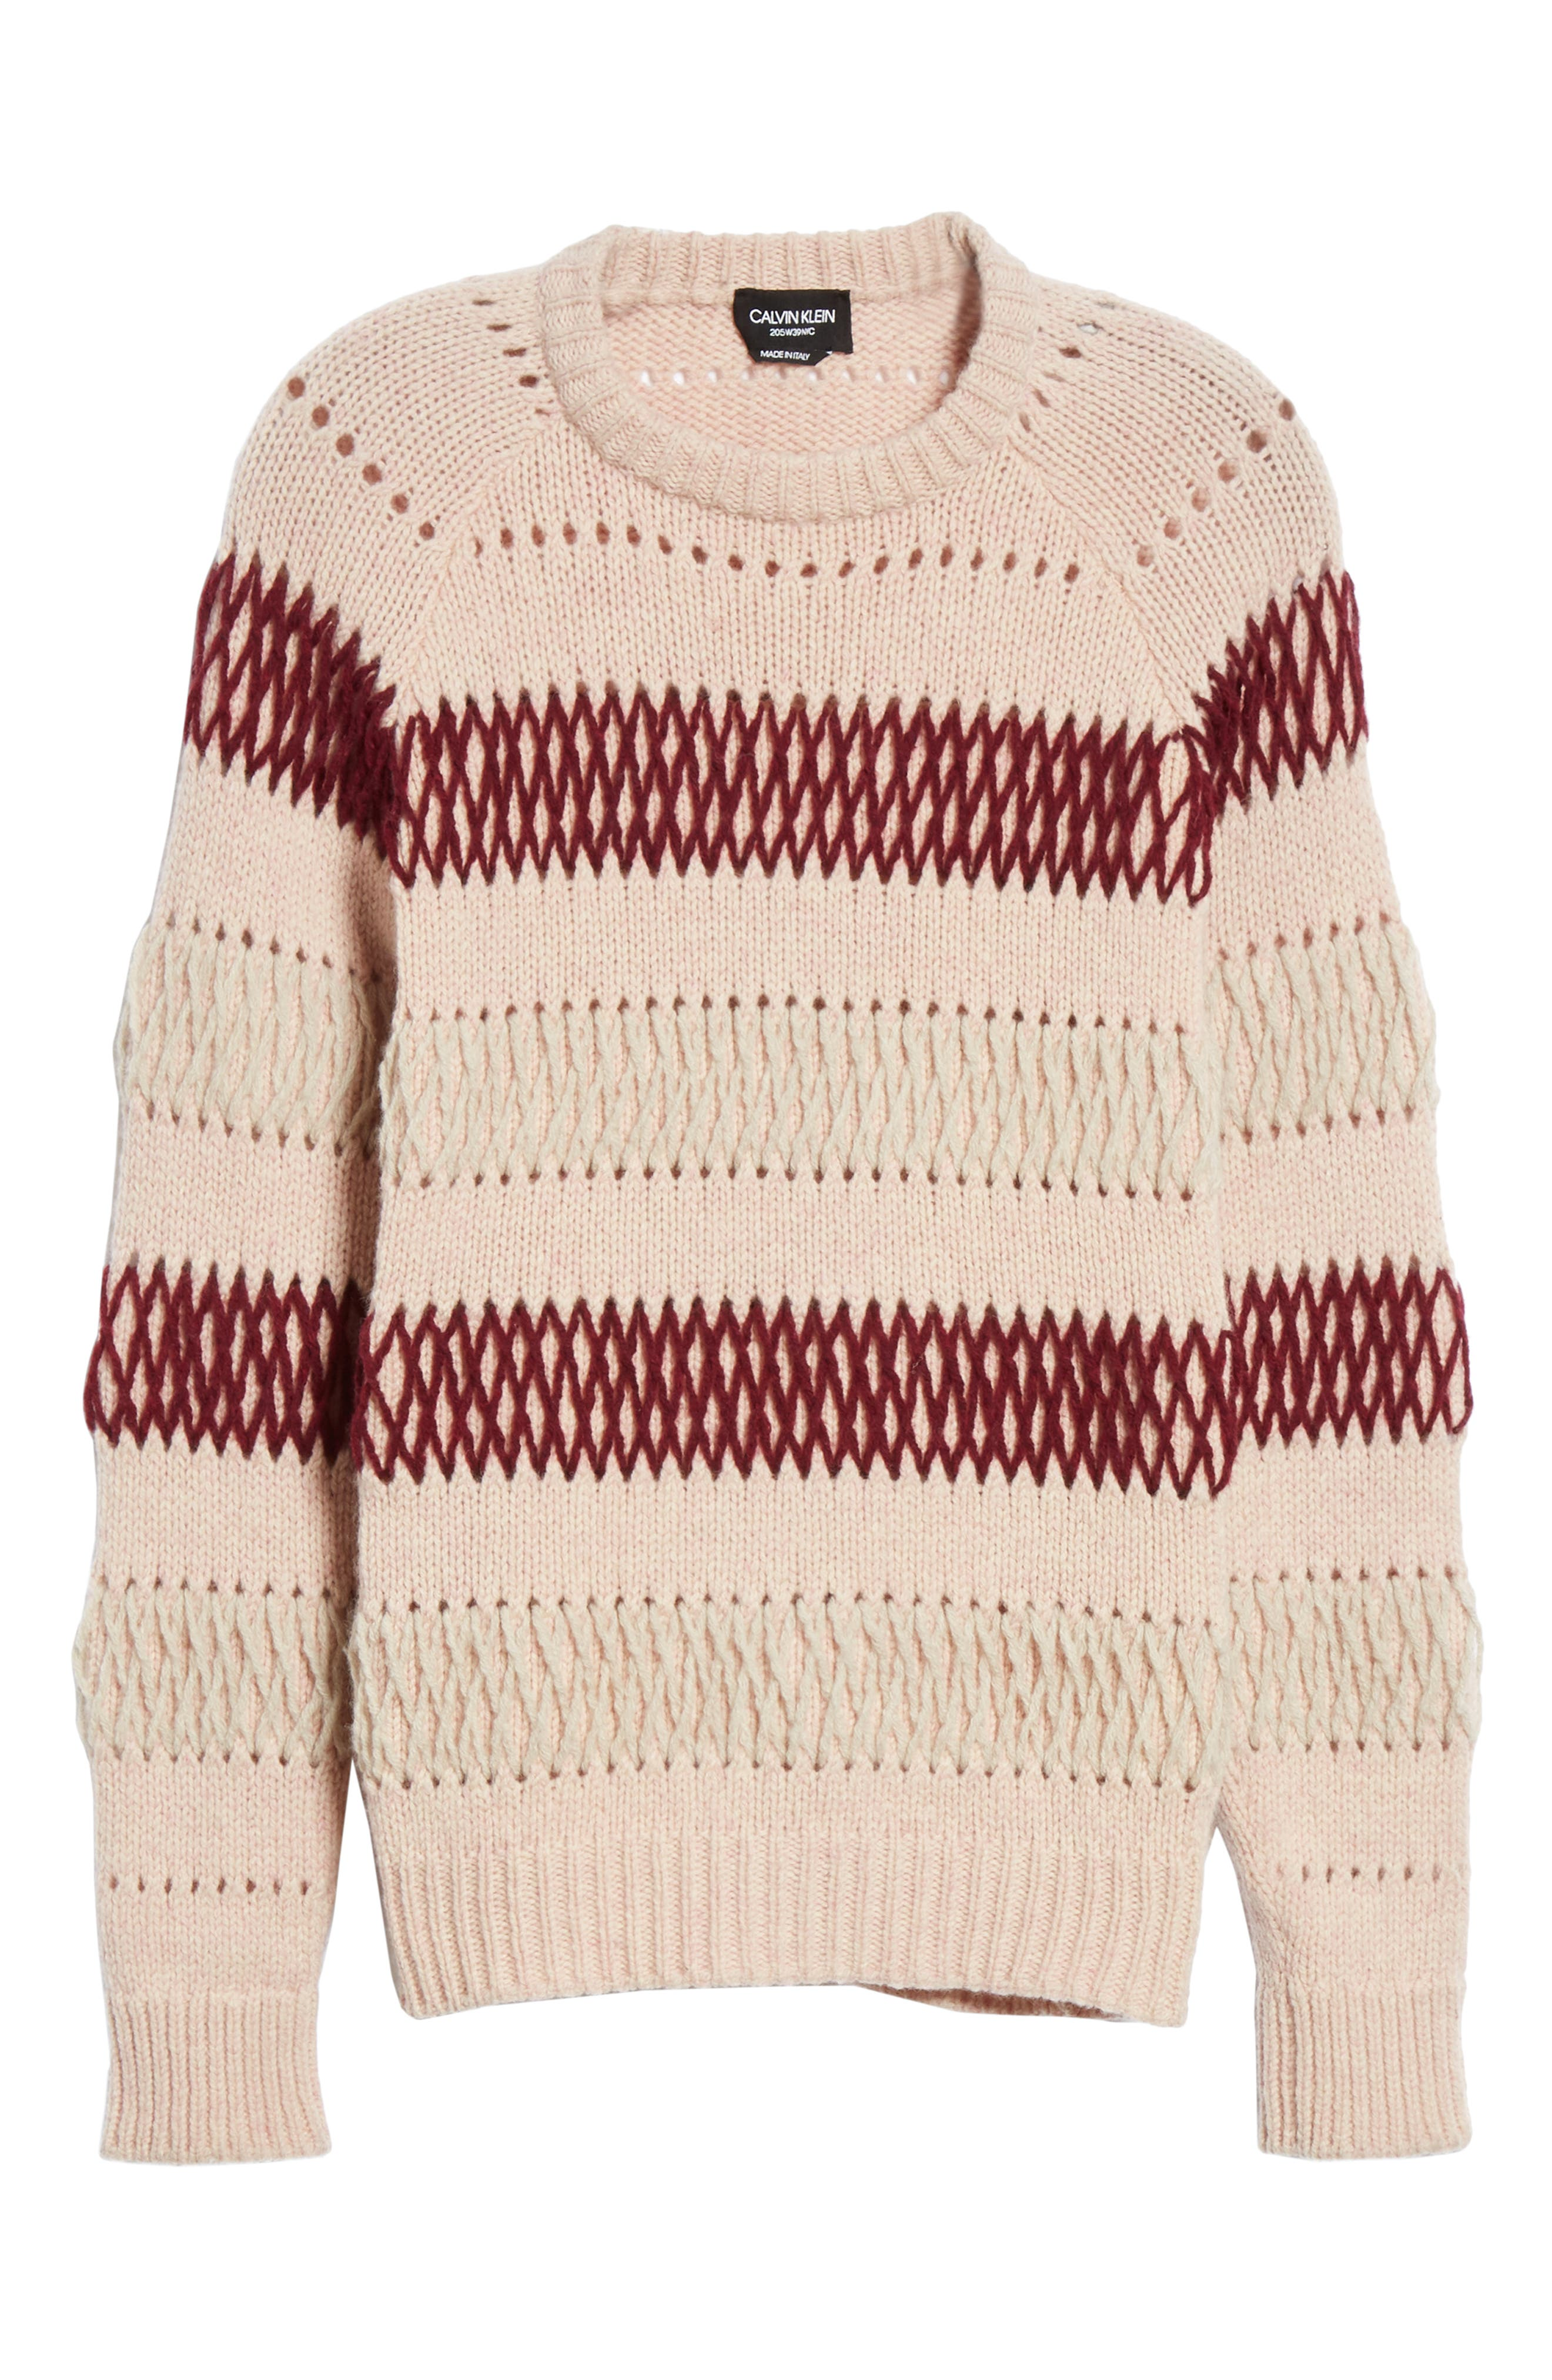 Embroidered Stripe Wool Sweater,                             Alternate thumbnail 7, color,                             PALE PINK BURGUNDY